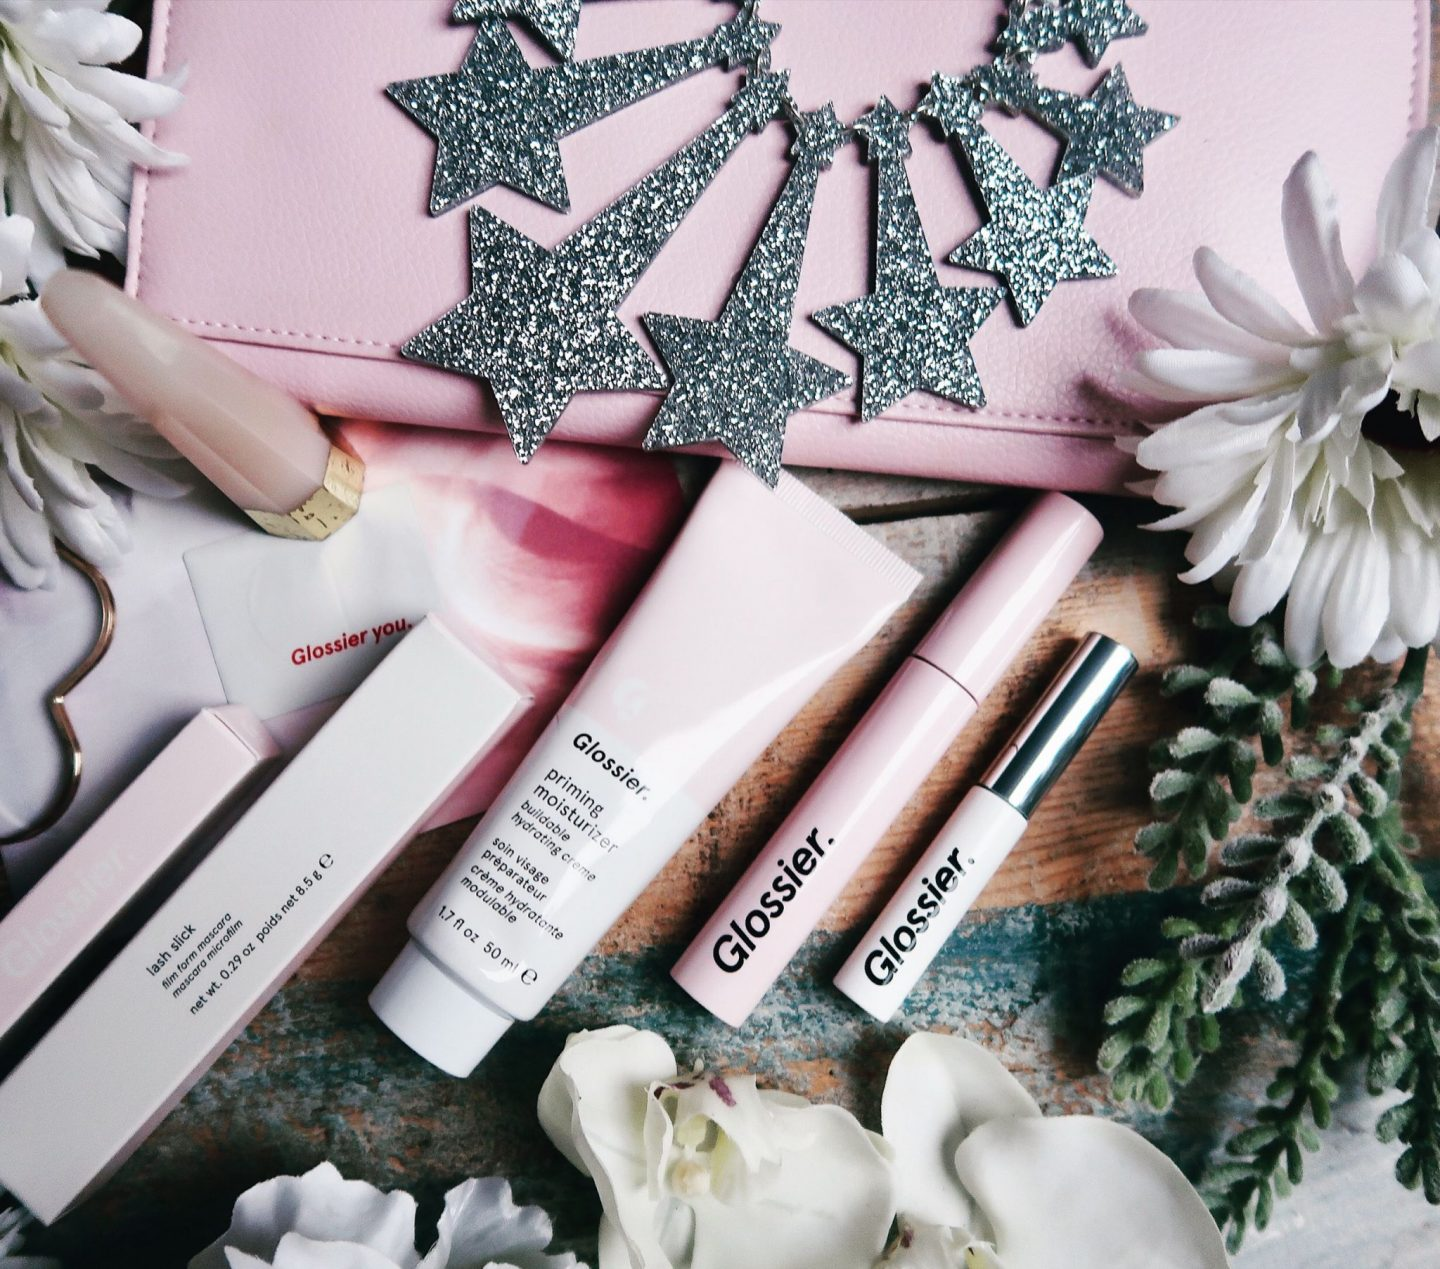 Glossier | Is it Worth the Hype?